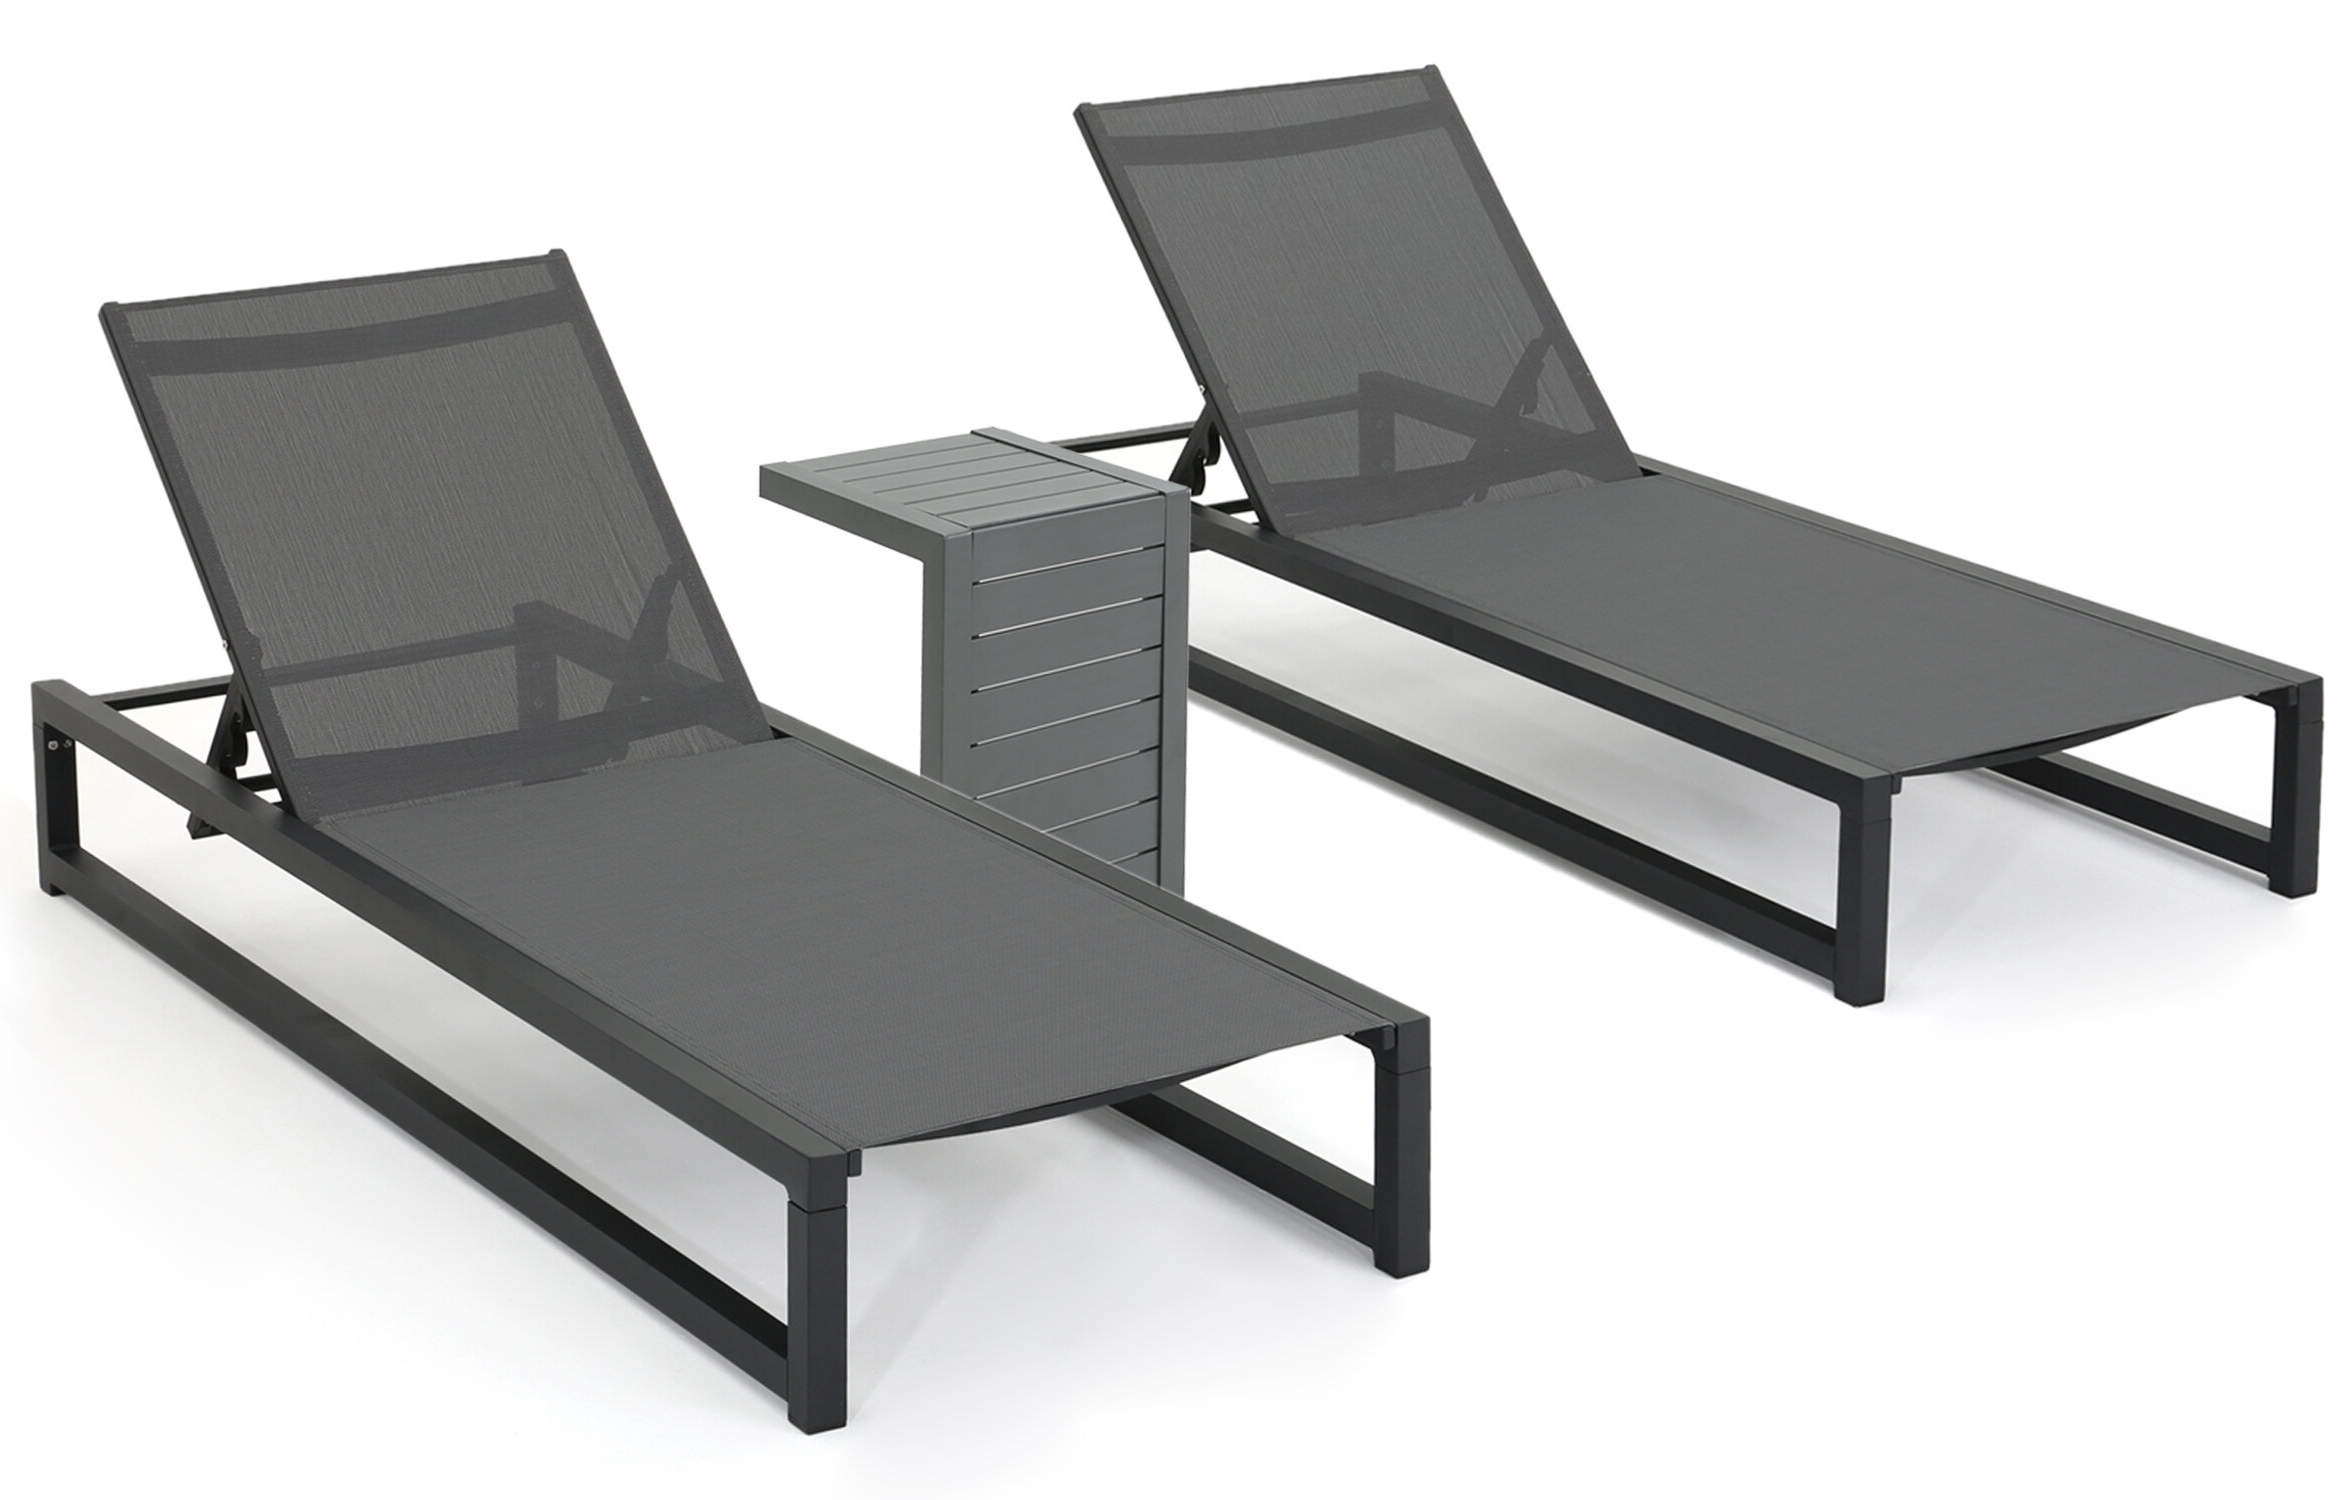 Most Up To Date Santini Reclining Chaise Lounge With Table Regarding Plastic Chaise Lounges W/ Wheels (View 18 of 25)